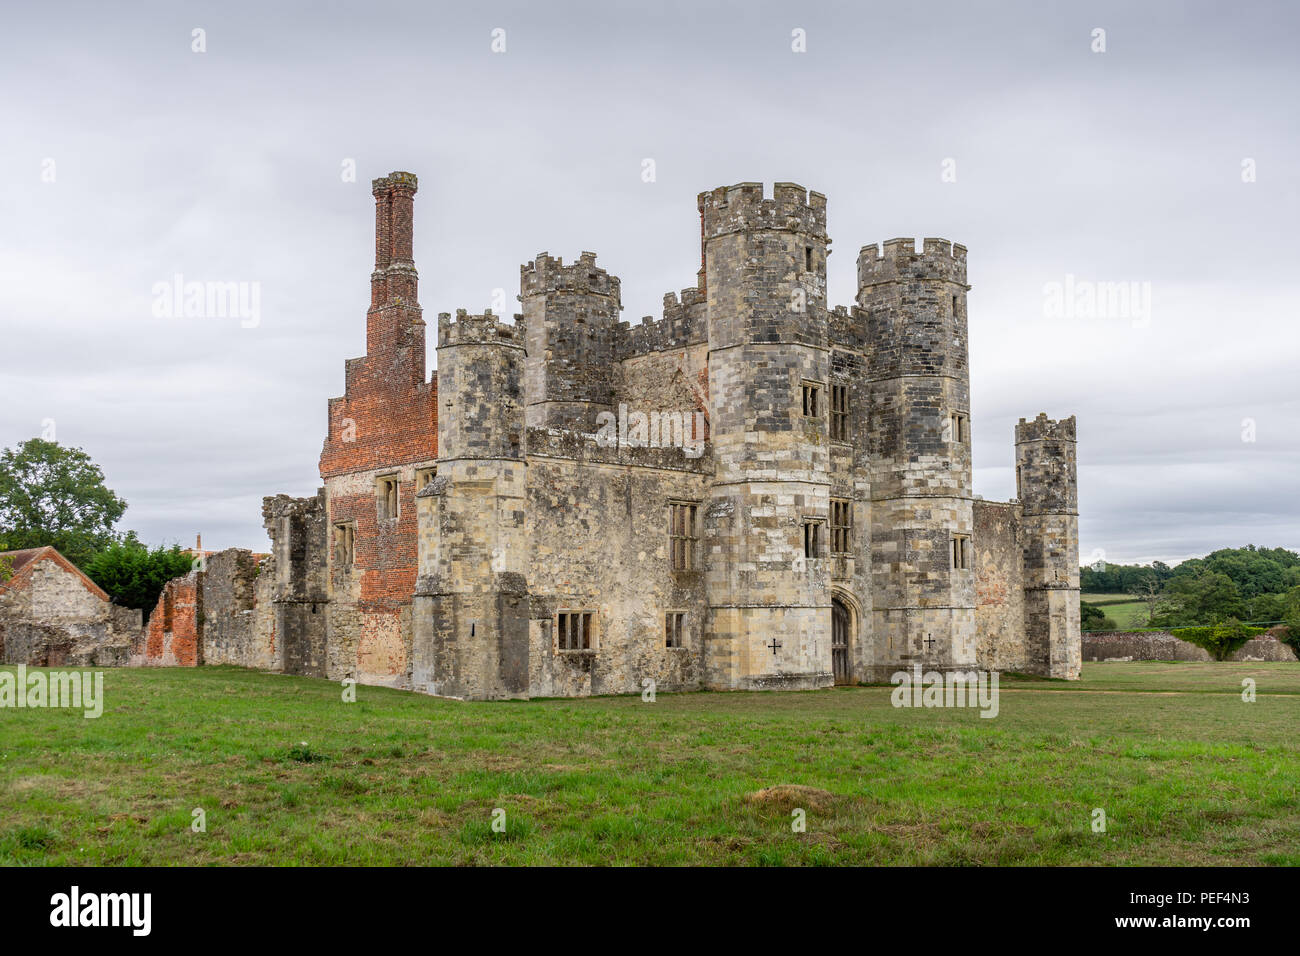 The remains of the medieval Titchfield Abbey surrounded by the Hampshire countryside, English Heritage site, Titchfield, Hampshire, England, UK - Stock Image